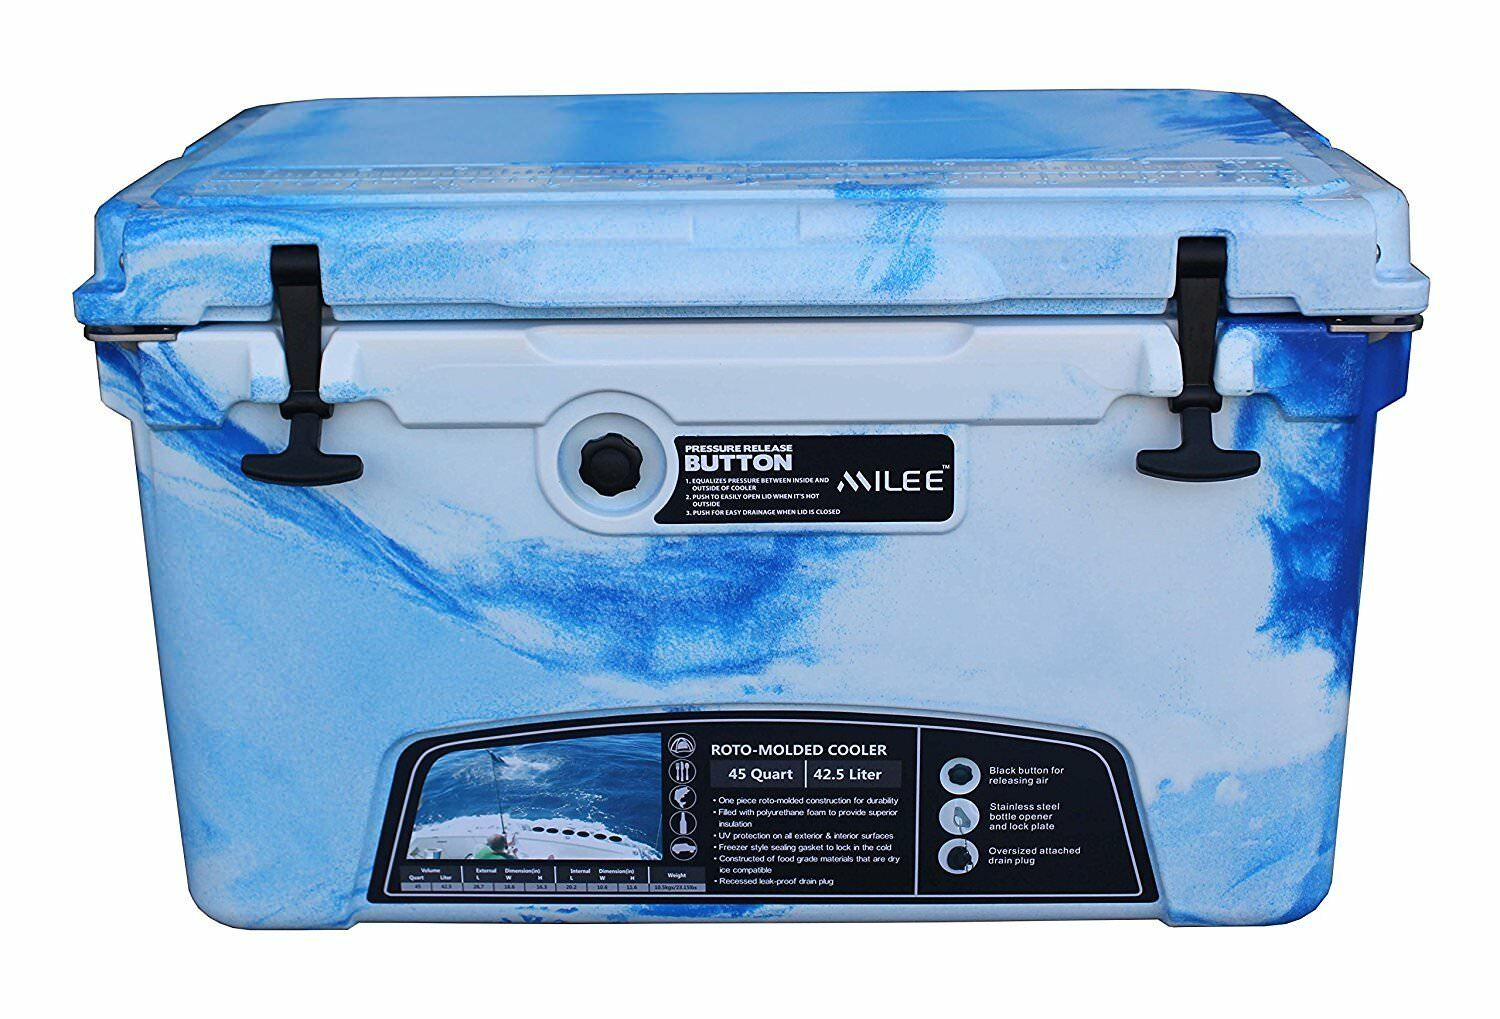 MILEE  Heavy Duty Cooler 45 QT, Include  45 Accessories Basket Cup Holder Divider  outlet online